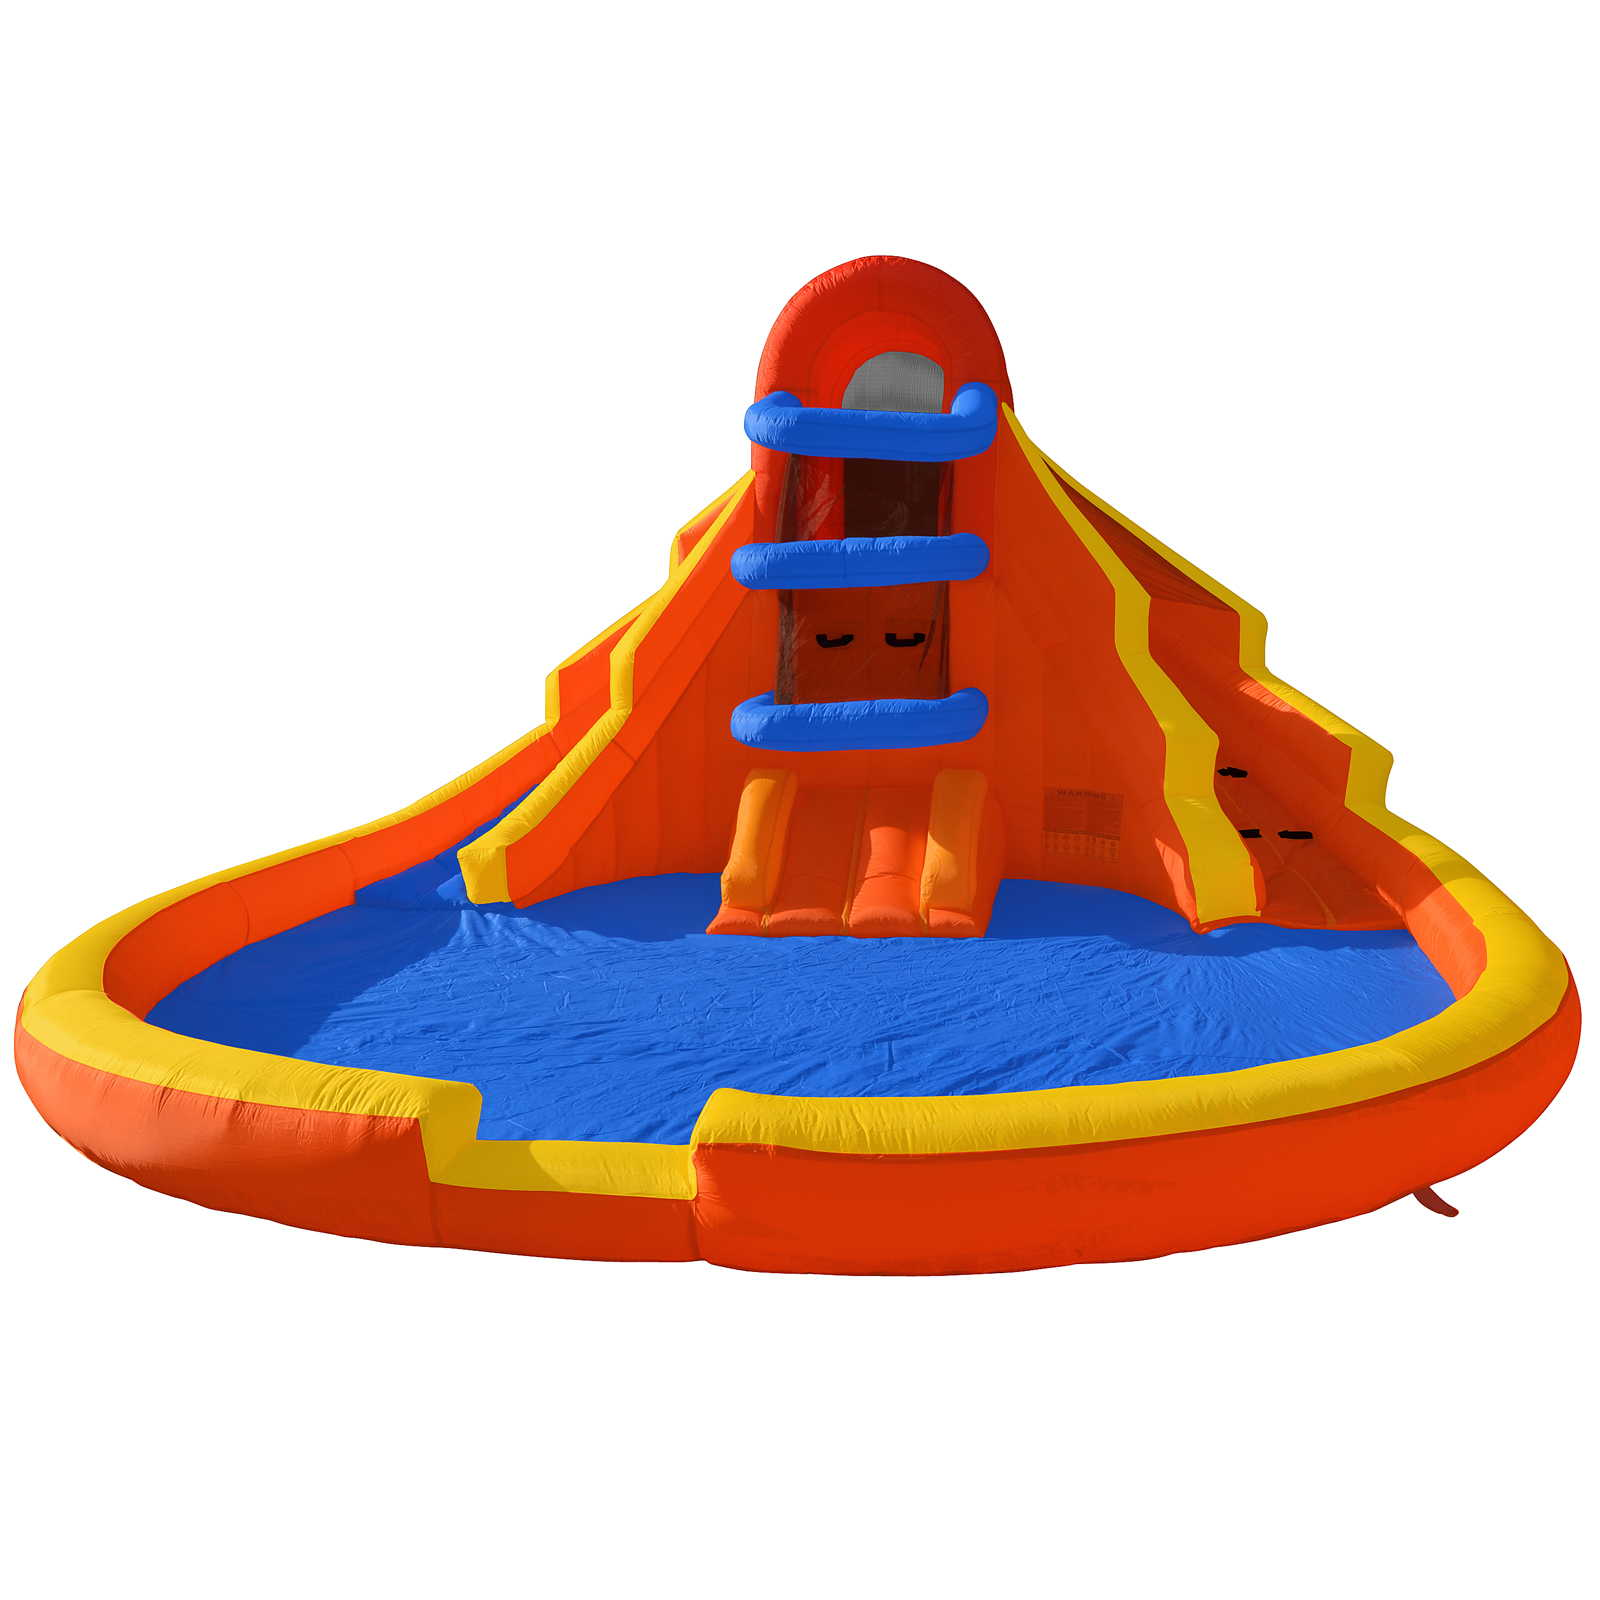 Cloud Nine Climb 'n' Slide - Inflatable Outdoor Water Sli...